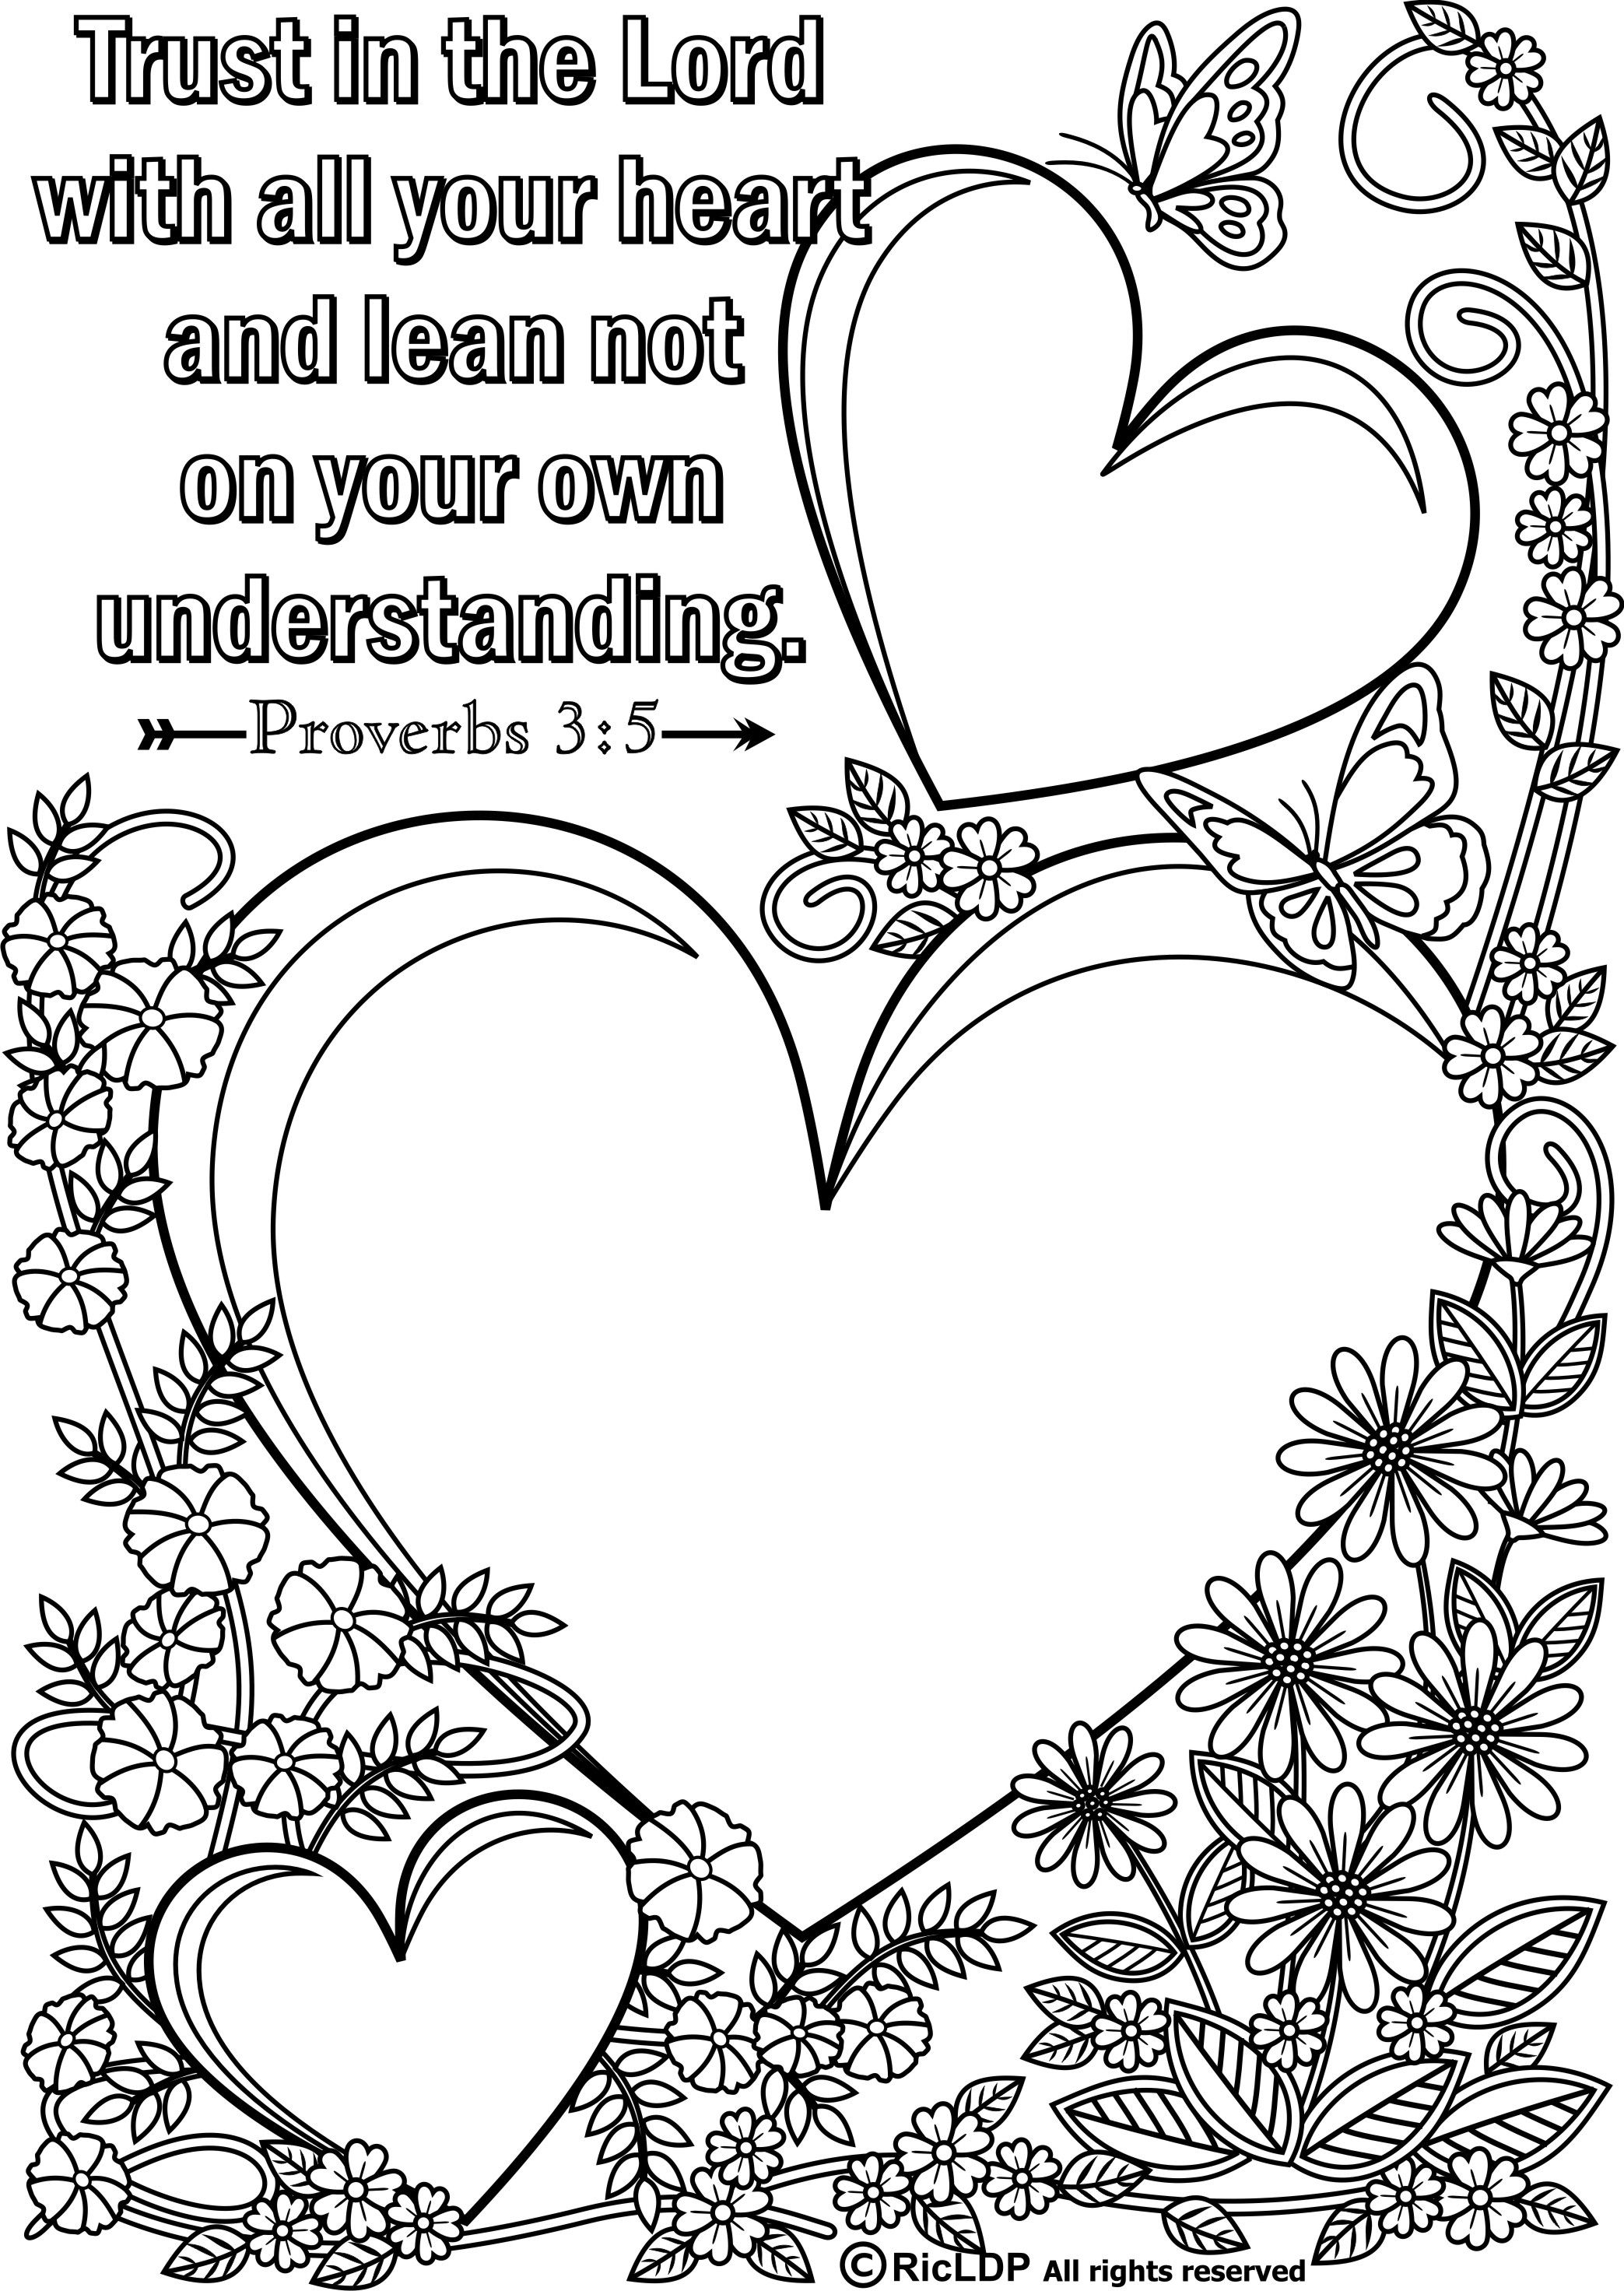 15 printable bible verse coloring pages - Christian Coloring Pages Youth